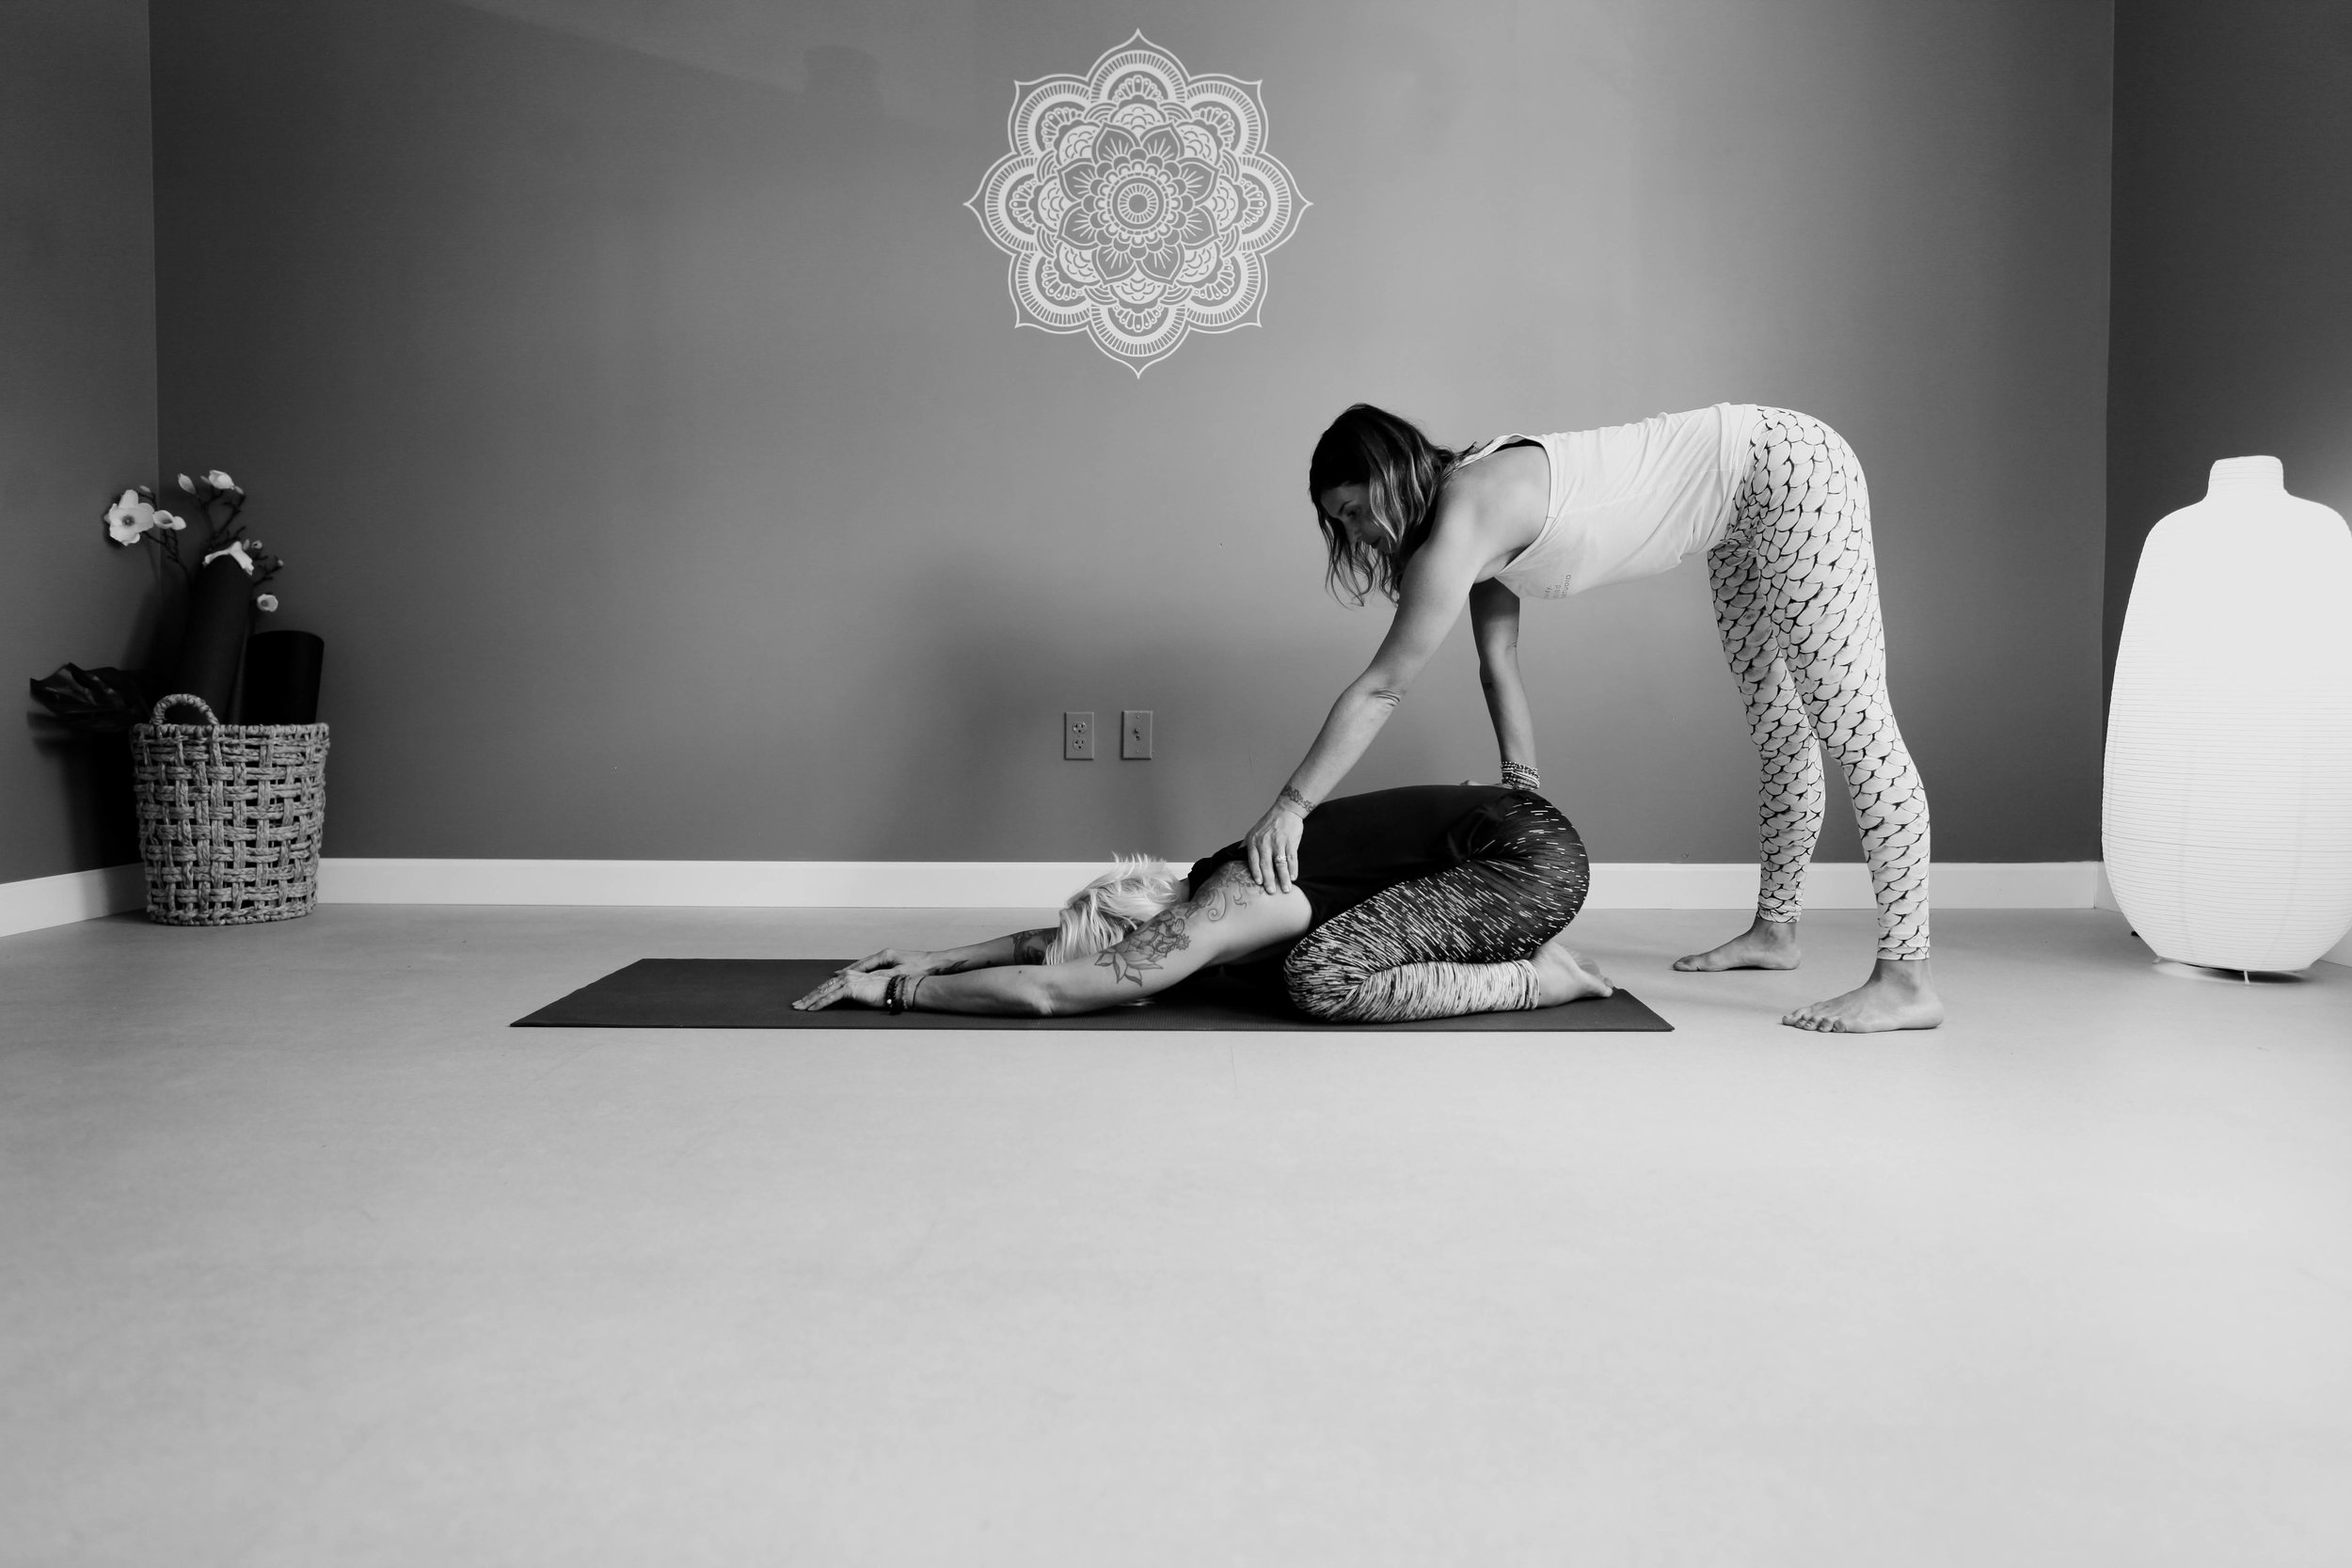 "Moksha Yoga Studio 200 Hour Teacher Training Program - with founder, Cora Rosen and MYS FacultySep 3rd-6th, 9-13th, 16th-18th, Sep 30th-Oct 4th, 7th-11th • Monday-Friday from 9-2pm each dayStudy in the practice of yoga, and it's teachings... Our extensive 200 hour Yoga teacher training and comprehensive studies program includes Vinyasa Yoga and Patanjali's Yoga Sutras, combined for a thorough and practical understanding of Yoga and it's teachings. With the Sutra's we will explore the outer level of consciousness all the way into the depths of our being. Included in the Sutra's are the asanas,(yoga poses) which you will learn the classical and contemporary techniques from the best major systems such as Ashtanga, Iyengar, modern techniques such as yoga conditioning, restorative practices and more. These studies will assist you in cultivating a deeper understanding and connection to your personal practice as well as build confidence and gaining the preparation needed to be a well-rounded teacher.MYS's Teacher Training course will concentrate on Vinyasa yoga sequencing thru the classical foundations, teaching a yoga class effectively & safely, understanding the student and creating your own style of teaching. Techniques that will be used to accomplish this are a study of the body, anatomy and movement, pranayama and the science of breathing, how we use the breath to cultivate energy while quieting the heart mind relationship. Safe assisting instruction, either physical or verbal descriptions will be reviewed as well as the importance of props and modifications to be able to assist others safely through their practice. An introduction to Kundalini, the nadis, Sushumna nadis and the relationship to the chakras as well as learning the 3 doshas, and understanding how to cultivate this into your daily life. We will discuss teaching philosophy, ethics, proper sequencing, marketing and building your foundation as a teacher. All of this will take your Yoga and your self to the next level. By the end of the course, upon completion you will not only receive your 200 Teacher Certification approved by Yoga Alliance but a wealth of information, wisdom and insight to continue on your yogic journey with.Through this program you will:* Empower yourself and others* Refine and deepen your own yoga practice and knowledge* Deepen your understanding of asanas, technique, alignment, modifications and benefits* Learn how to design effective classes and the importance of sequencing* Develop well-rounded knowledge of yoga philosophy and lifestyle practices* Gain experience through practice teaching* Learn the business of Yoga* Connect with others who are participating in this program* With the completion of this course you will receive your Yoga Alliance 200 hr Teaching Certificate Pre-CourseRequirements:* Must be a yoga practitioner for minimum of 1 year with a consistent practice.*Complete Teacher Training Application and submit along with $150 application fee: Email cora@mokshayogastudio.com for application.* Recommended reading and reference books:""Light on Yoga"", B.K.S Iyengar; Schocken Books, New York""The Tree of Yoga"" , B.K.S. Iyengar; Shambala Books, Boston""The Language of Yoga"", Nicolai Bachman; Sounds True, Boulder CO""Anatomy of Hatha Yoga"", A Manual for Students, Teachers, and Practitioners, H. David Coulter; Body and Breath, Honesdale, PA"" The Yoga of The Yogi"", The Legacy of T Krishnamacharya, Kausthub Desikachar; Krishnamacharya Yoga Mandiram, Chennai, India ""Ashtanga Yoga"", The Practice Manual, David Swenson; Ashtanga Yoga Productions, Houston, Texas What'sIncluded:*Moksha Yoga Studio's Comprehensive Teacher Training Manual*Unlimited Yoga at Moksha Yoga Studio to satisfy course requirements*1 Workshop at Moksha Yoga StudioCourse Requirements:* Attendance of full course, absence or tardiness will have to be made up during next session.* Self-practice hours: Must attend at least 2 classes a week for duration of training. (Signed sheet by instructor) * Supervised Class Observation Hours: Total of 10 classes, observation of at least three different styles taught at Moksha Yoga Studio* Supervised Class Assist/Adjustment Hours: Completed after asana and assist review in class, and approved by instructors* Completion of all assignments, papers as well as written and teaching examsFees:Payment options or as follows:* Early Bird Tuition (paid in full by August 1st): $150 Registration Fee + $2550 Tuition = $2700* Regular Tuition (paid in full up to 1 week before training): $150 Registration Fee + $2850 Tuition = $3000 * Payment Plan Tuition (paid monthly for 4 months, July-Oct): $150 Reg. Fee + $675 a month = $2850*Payment Plan Tuition 2 (paid monthly for 5 months, June-Oct): $150 Reg. Fee + $450 a month = $2850Faculty: CORA ROSEN, Founder and Director of Moksha Yoga Studio has been practicing yoga for 20+ years and teaching for over 16. Cora not only facilitates teacher trainings but also teaches group classes incorporating intelligent and invigorating sequencing, good music and calming energy but specializes in working one on one. She works with professional athletes, celebrities and the local community using yoga as a tool to help address, assess and work through physical injuries and imbalances and foster a greater sense of awareness, healing and balance in the body and mind. Cora strives to bring yoga into everyday life by doing, evolving and truly living it, allowing peace and joy to flourish within and spread to others! Other instructors from the Moksha Yoga Studio family will also be involved in teaching/assisting in this course.Click here to pay application fee or register for course! Once you pay application fee, an email with application will be sent."